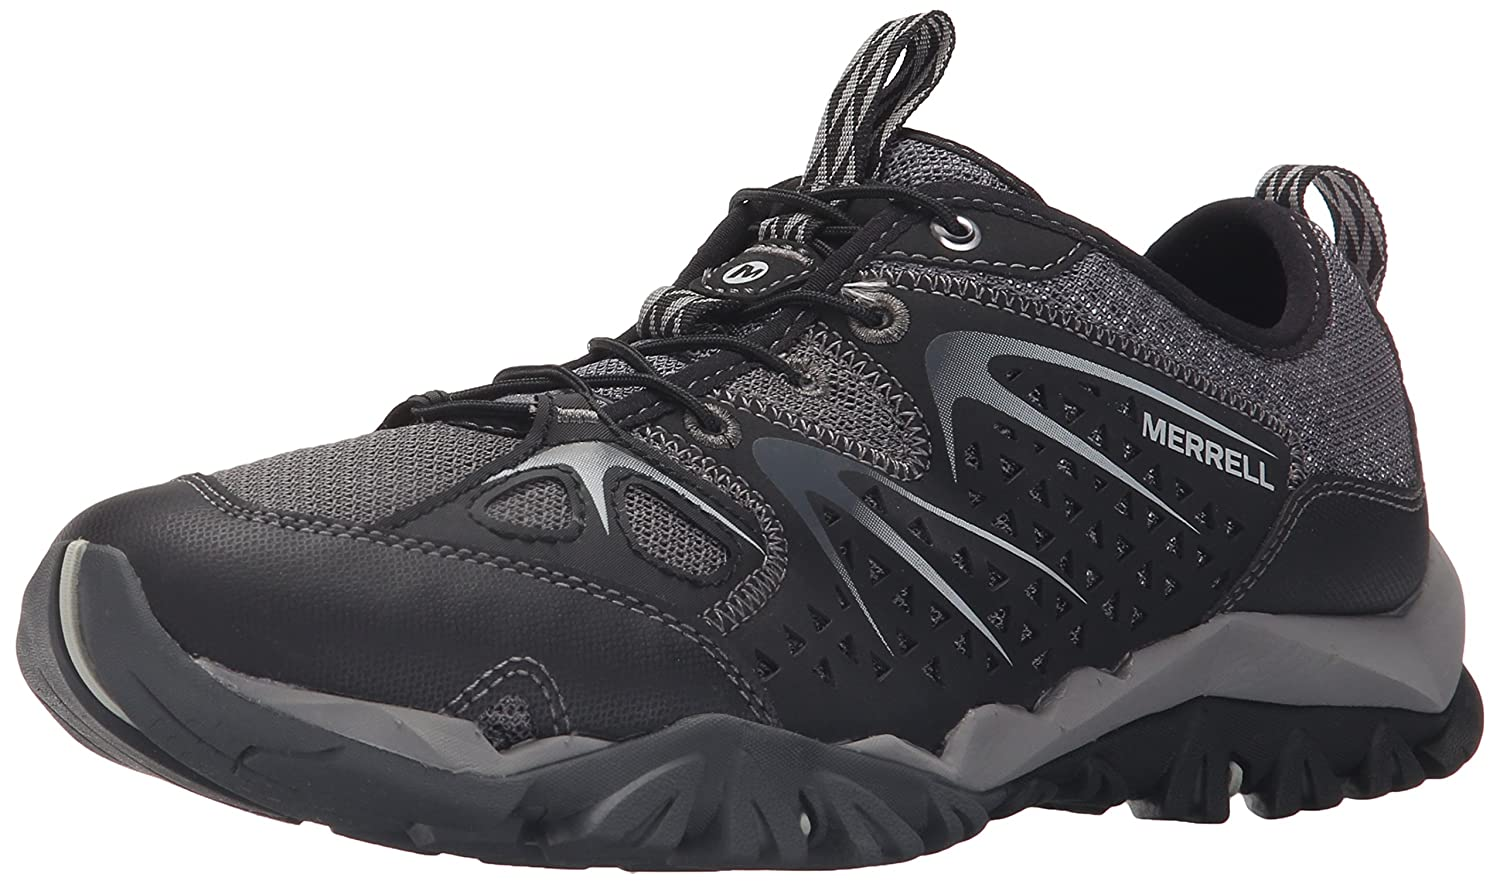 Merrell Women's Capra Rapid Hiking Shoe CAPRA RAPID-W